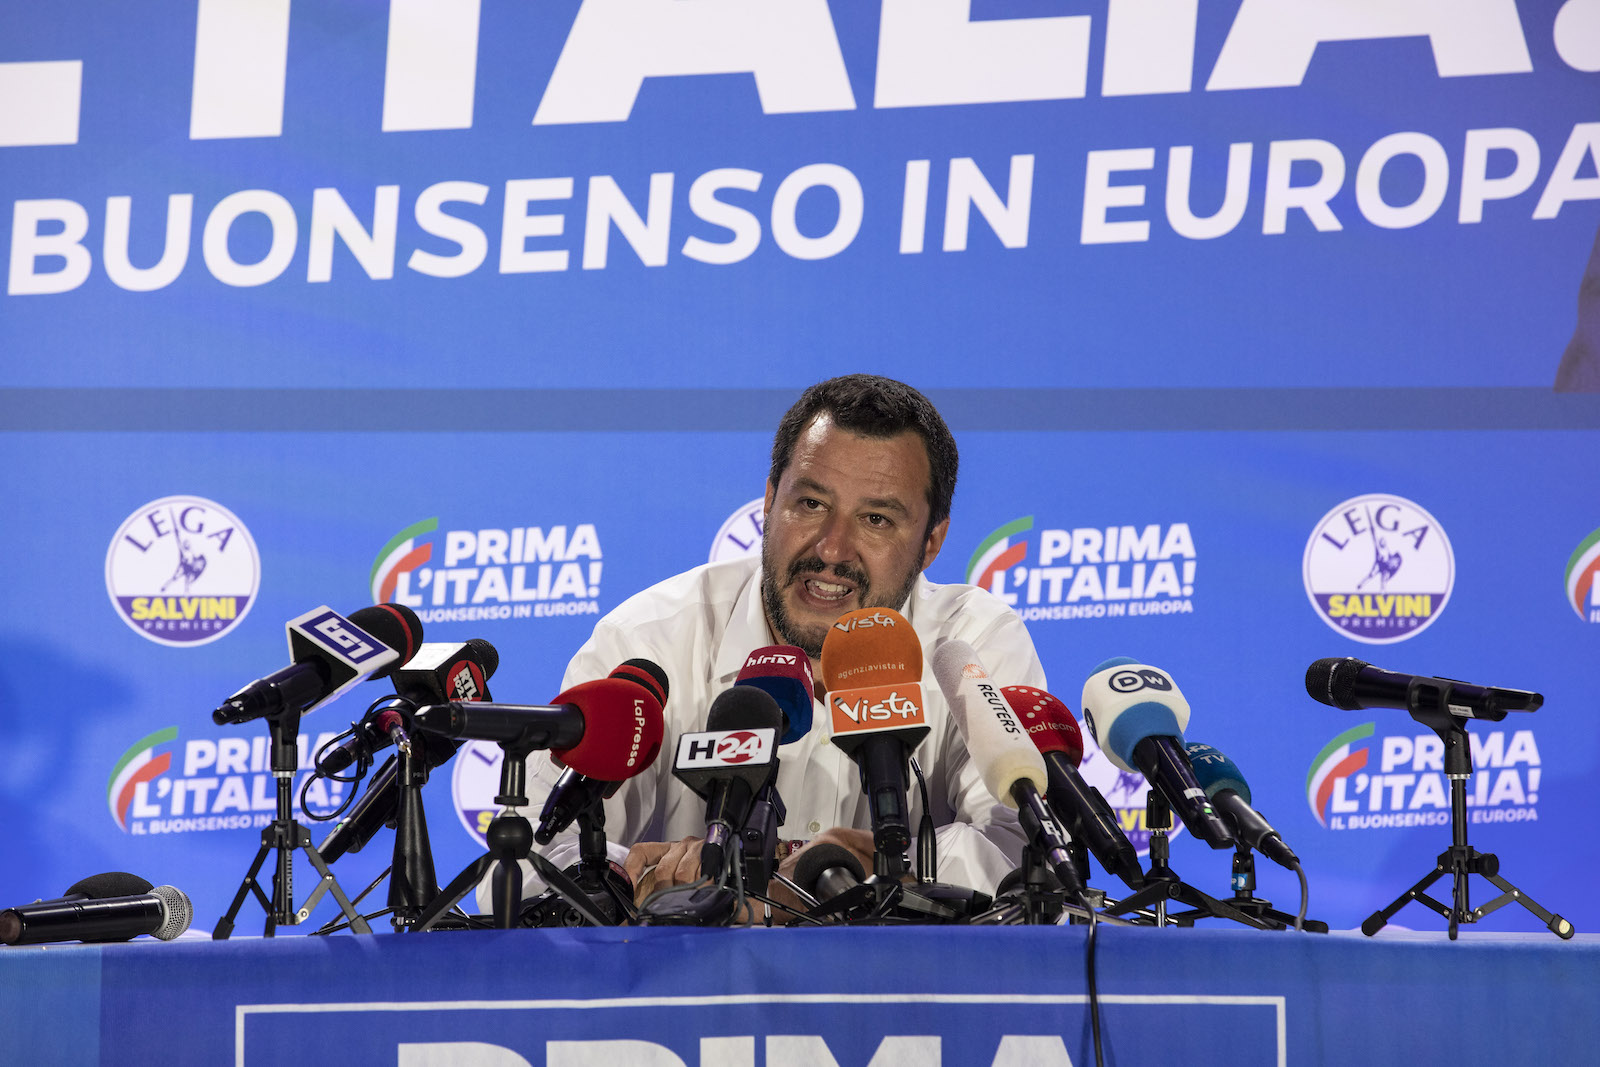 Italy's Deputy Prime Minister and leader of right-wing Lega (League) party Matteo Salvini following the European Parliamentary election results on May 27, 2019 in Milan, Italy.